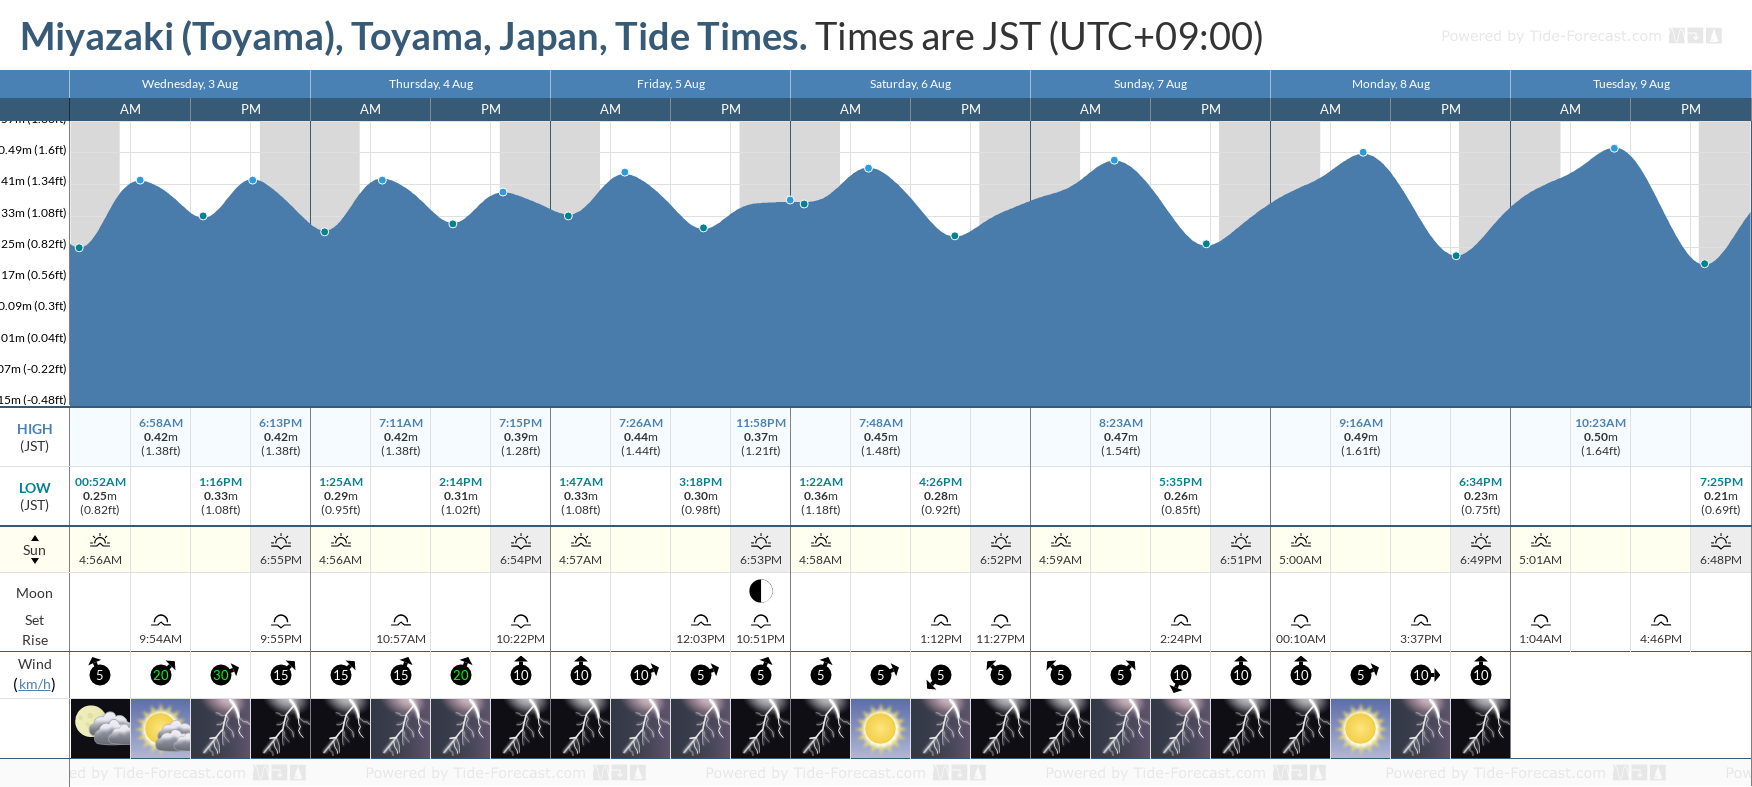 Miyazaki (Toyama), Toyama, Japan Tide Chart including high and low tide tide times for the next 7 days